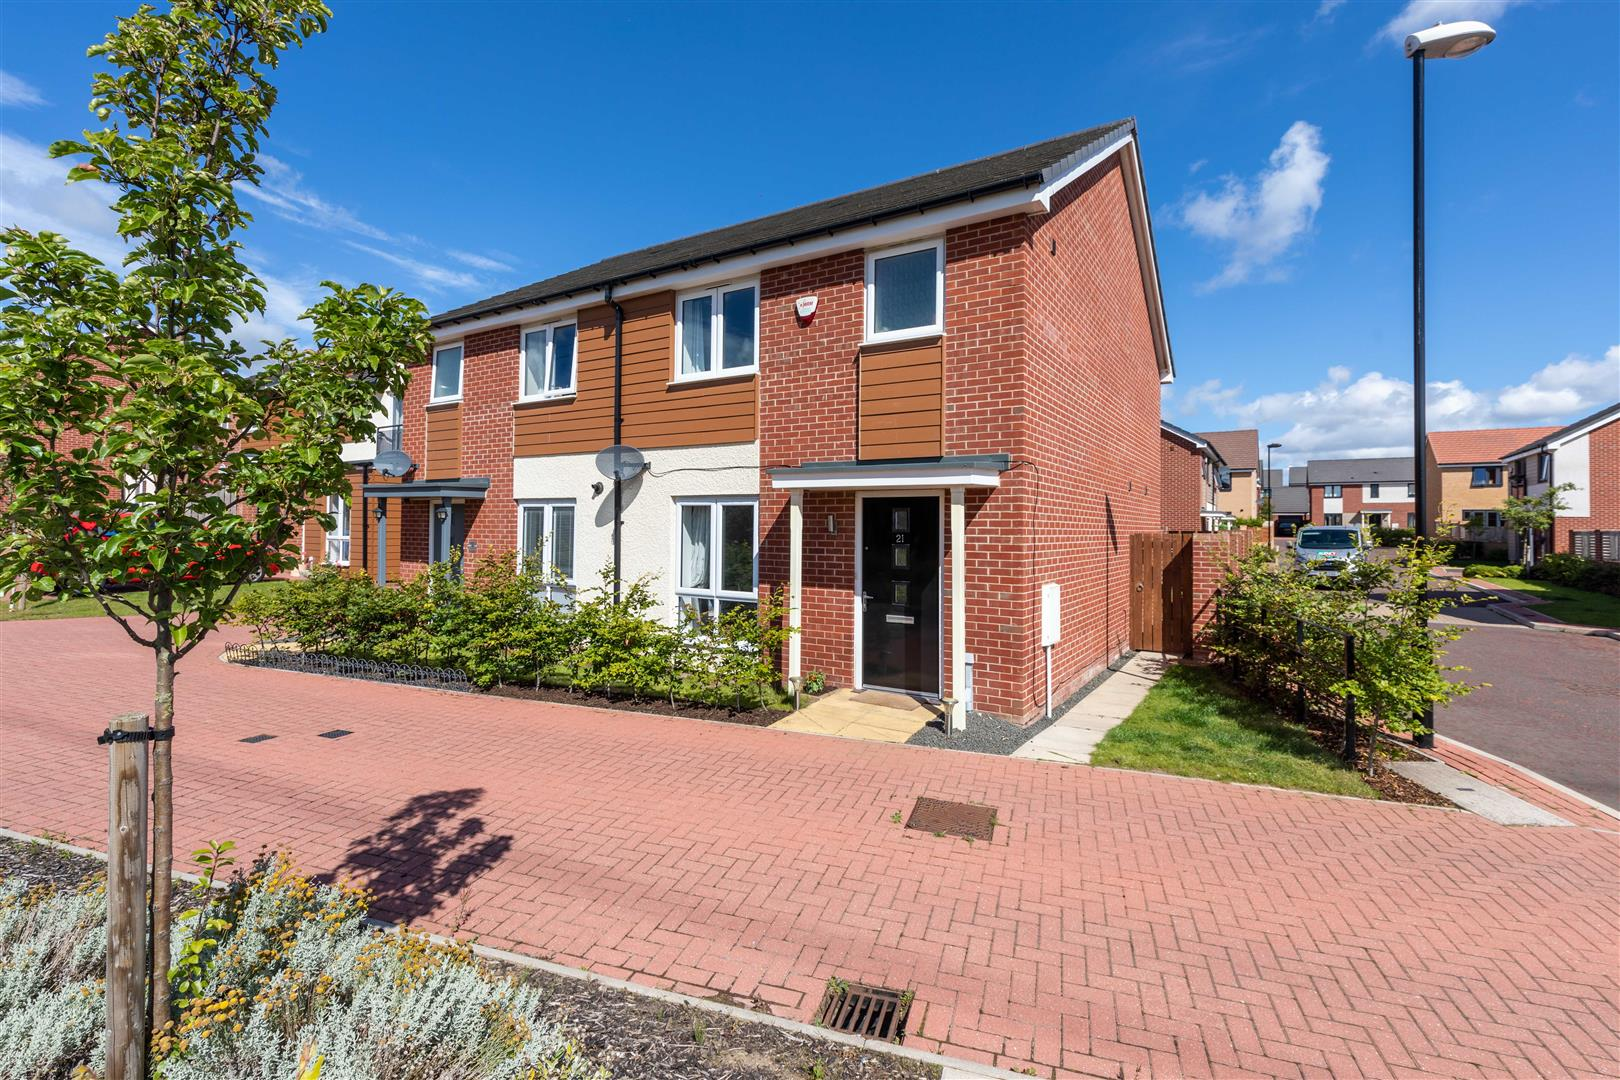 3 bed semi-detached house for sale in Newcastle Upon Tyne, NE13 9DE  - Property Image 1